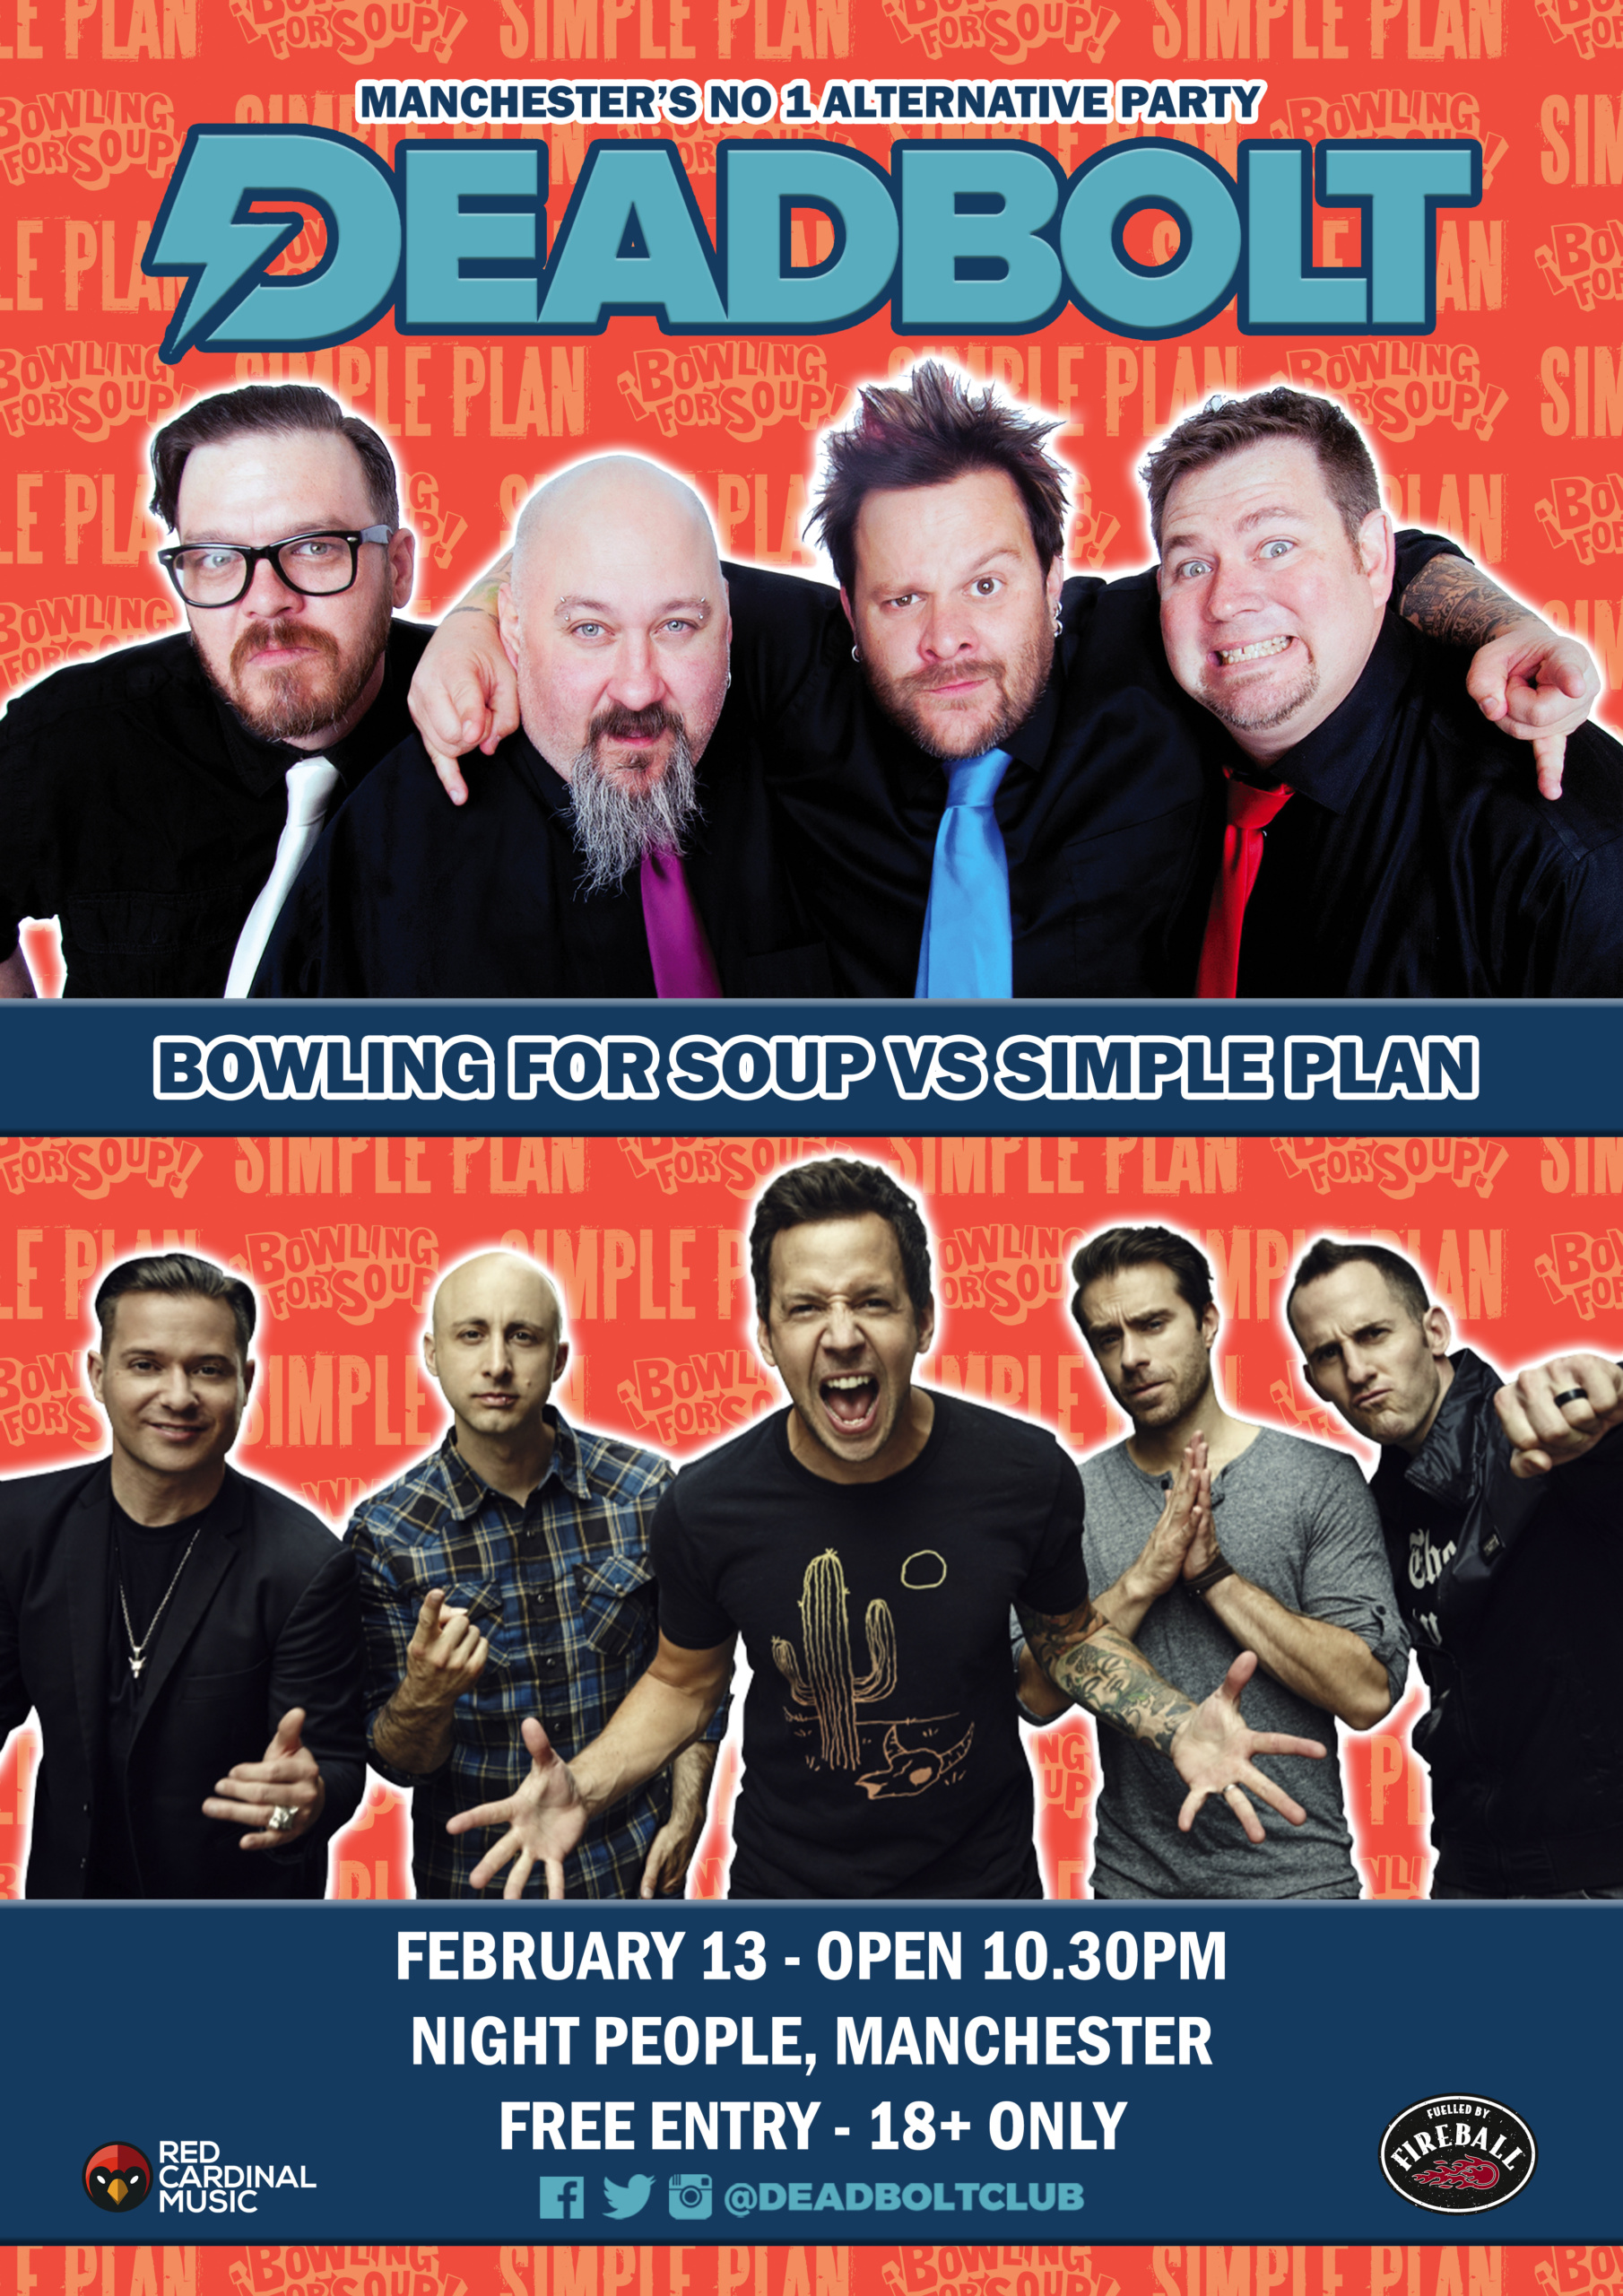 Deadbolt Manchester - Bowling For Soup vs Simple Plan - Feb 20 - Poster - Red Cardinal Music